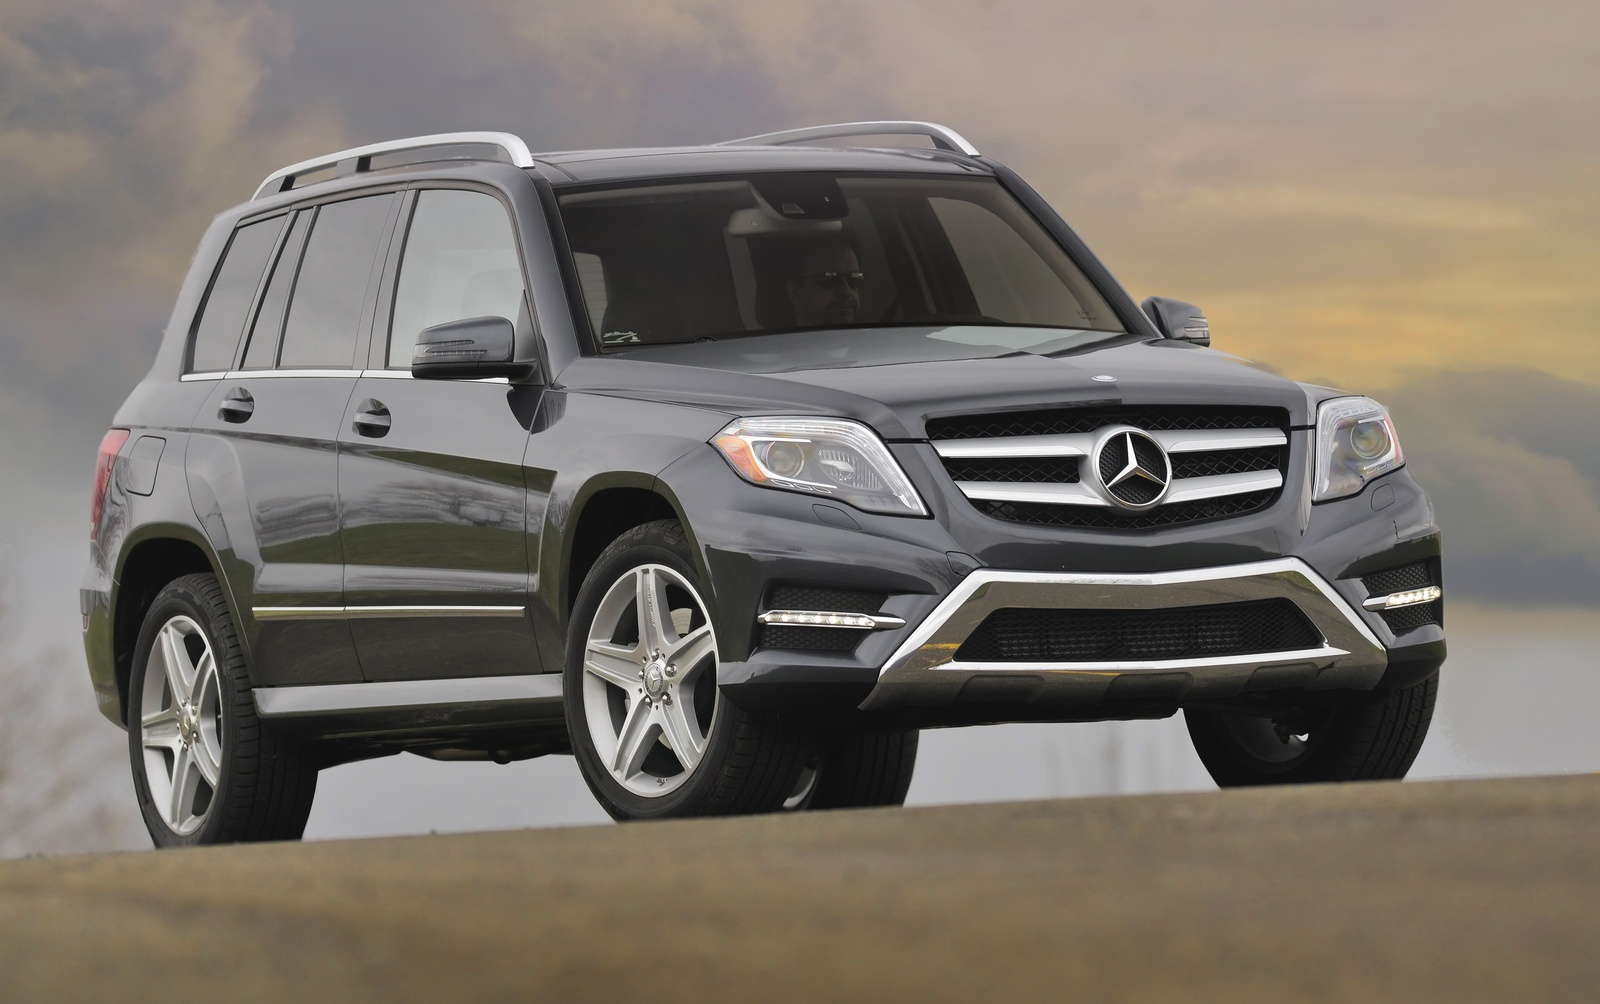 2014 mercedes benz glk class review cargurus for Mercedes benz glk 350 review